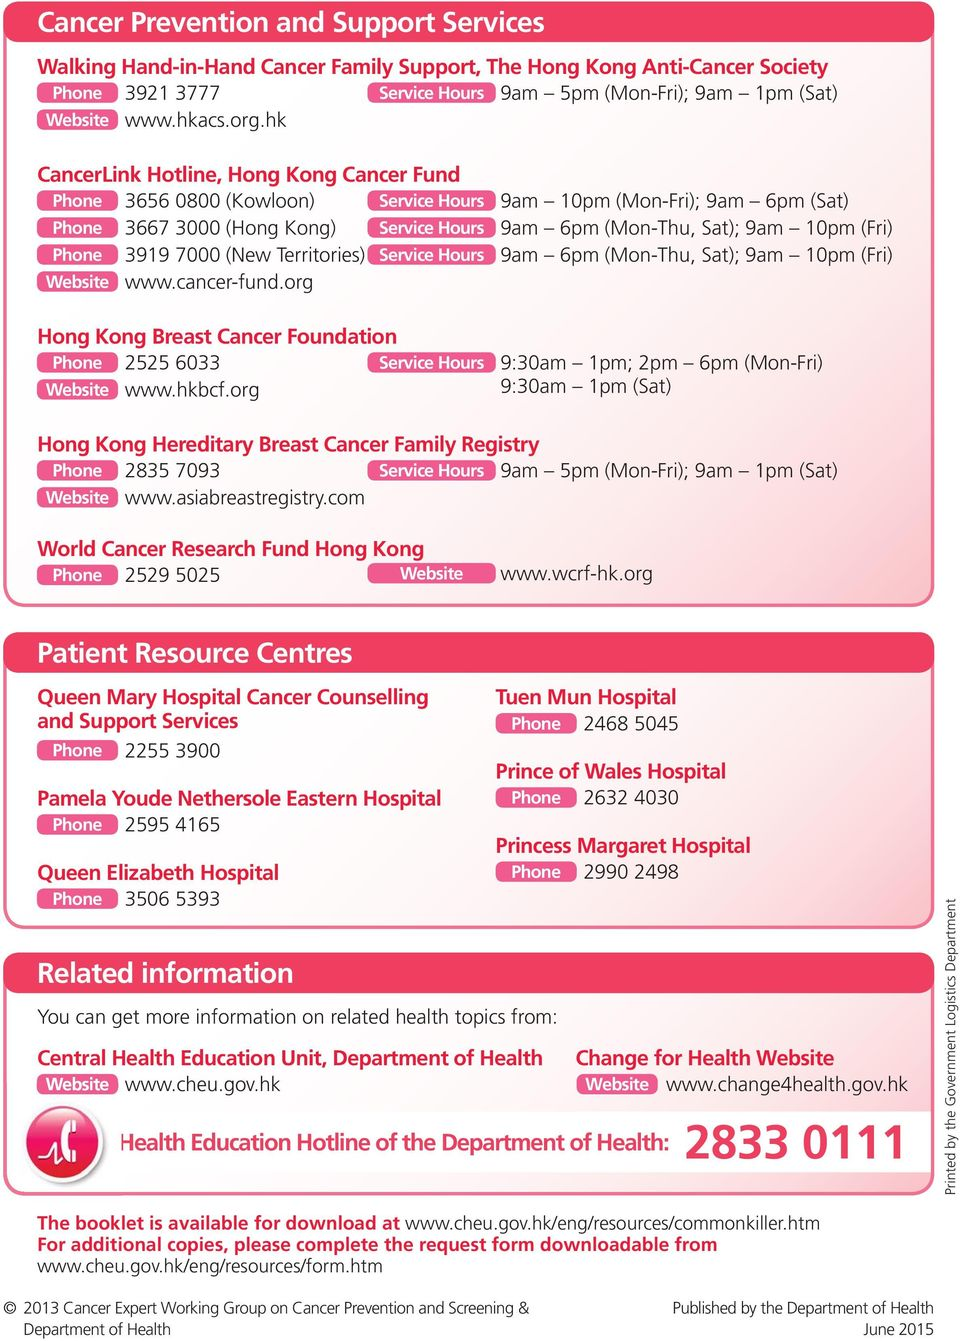 (Fri) Phone 3919 7000 (New Territories) Service Hours 9am 6pm (Mon-Thu, Sat); 9am 10pm (Fri) Website www.cancer-fund.